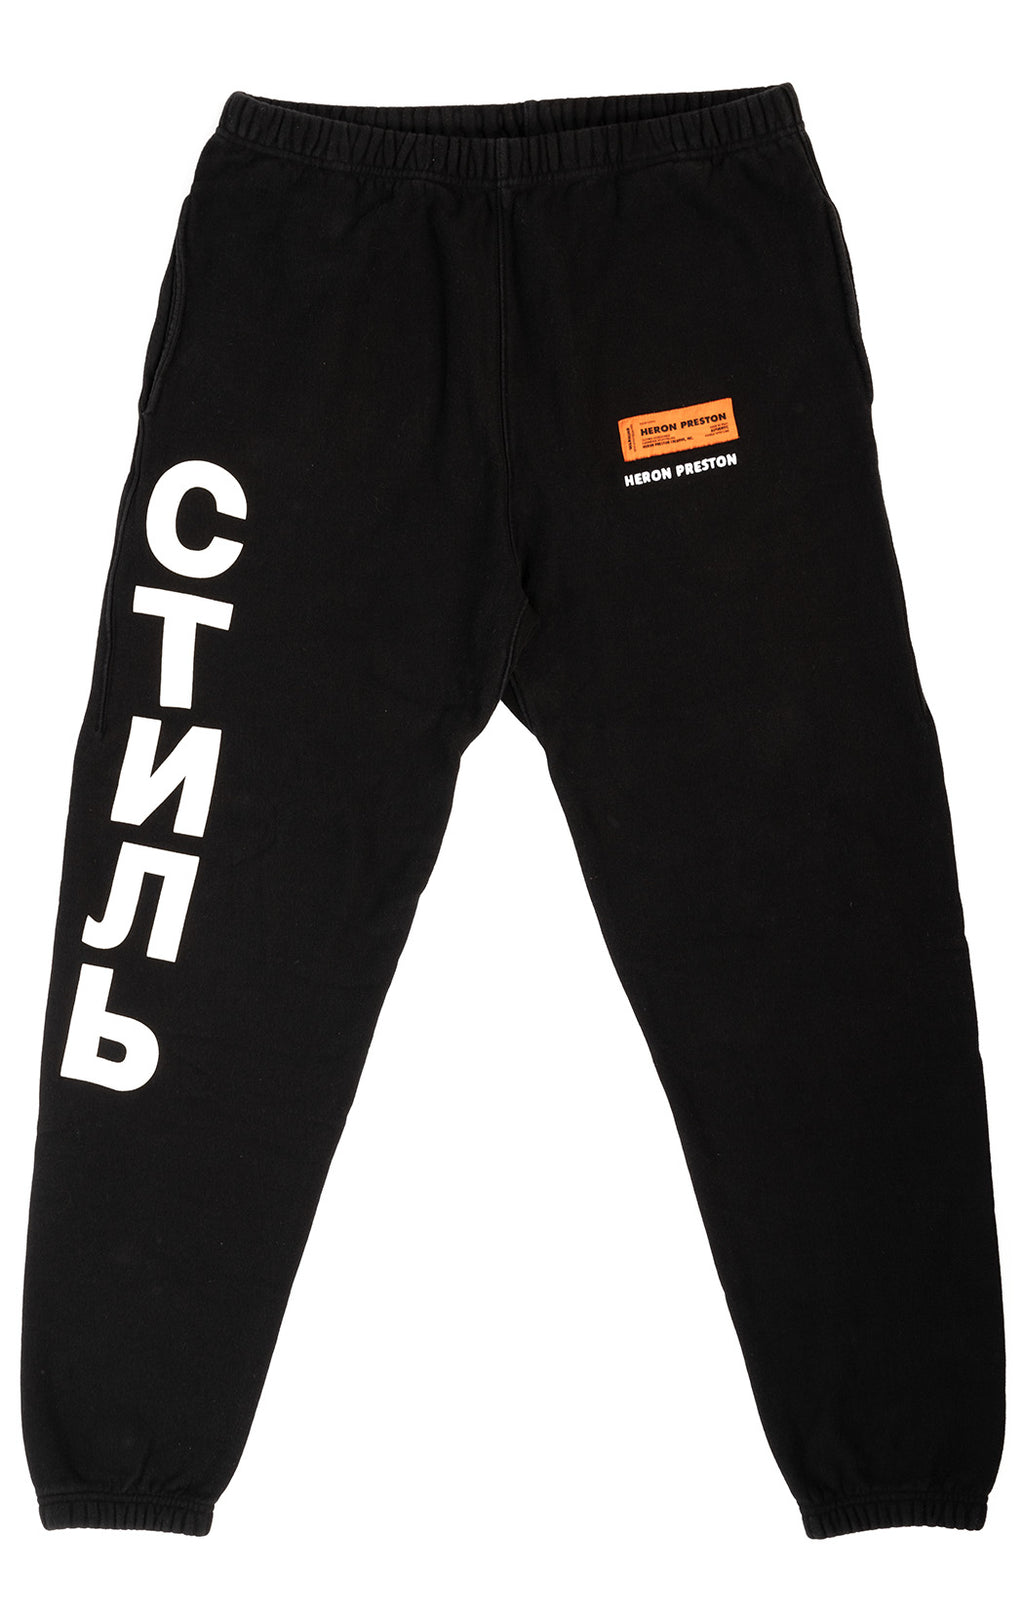 HERON PRESTON Sweatpants  Size: XXL